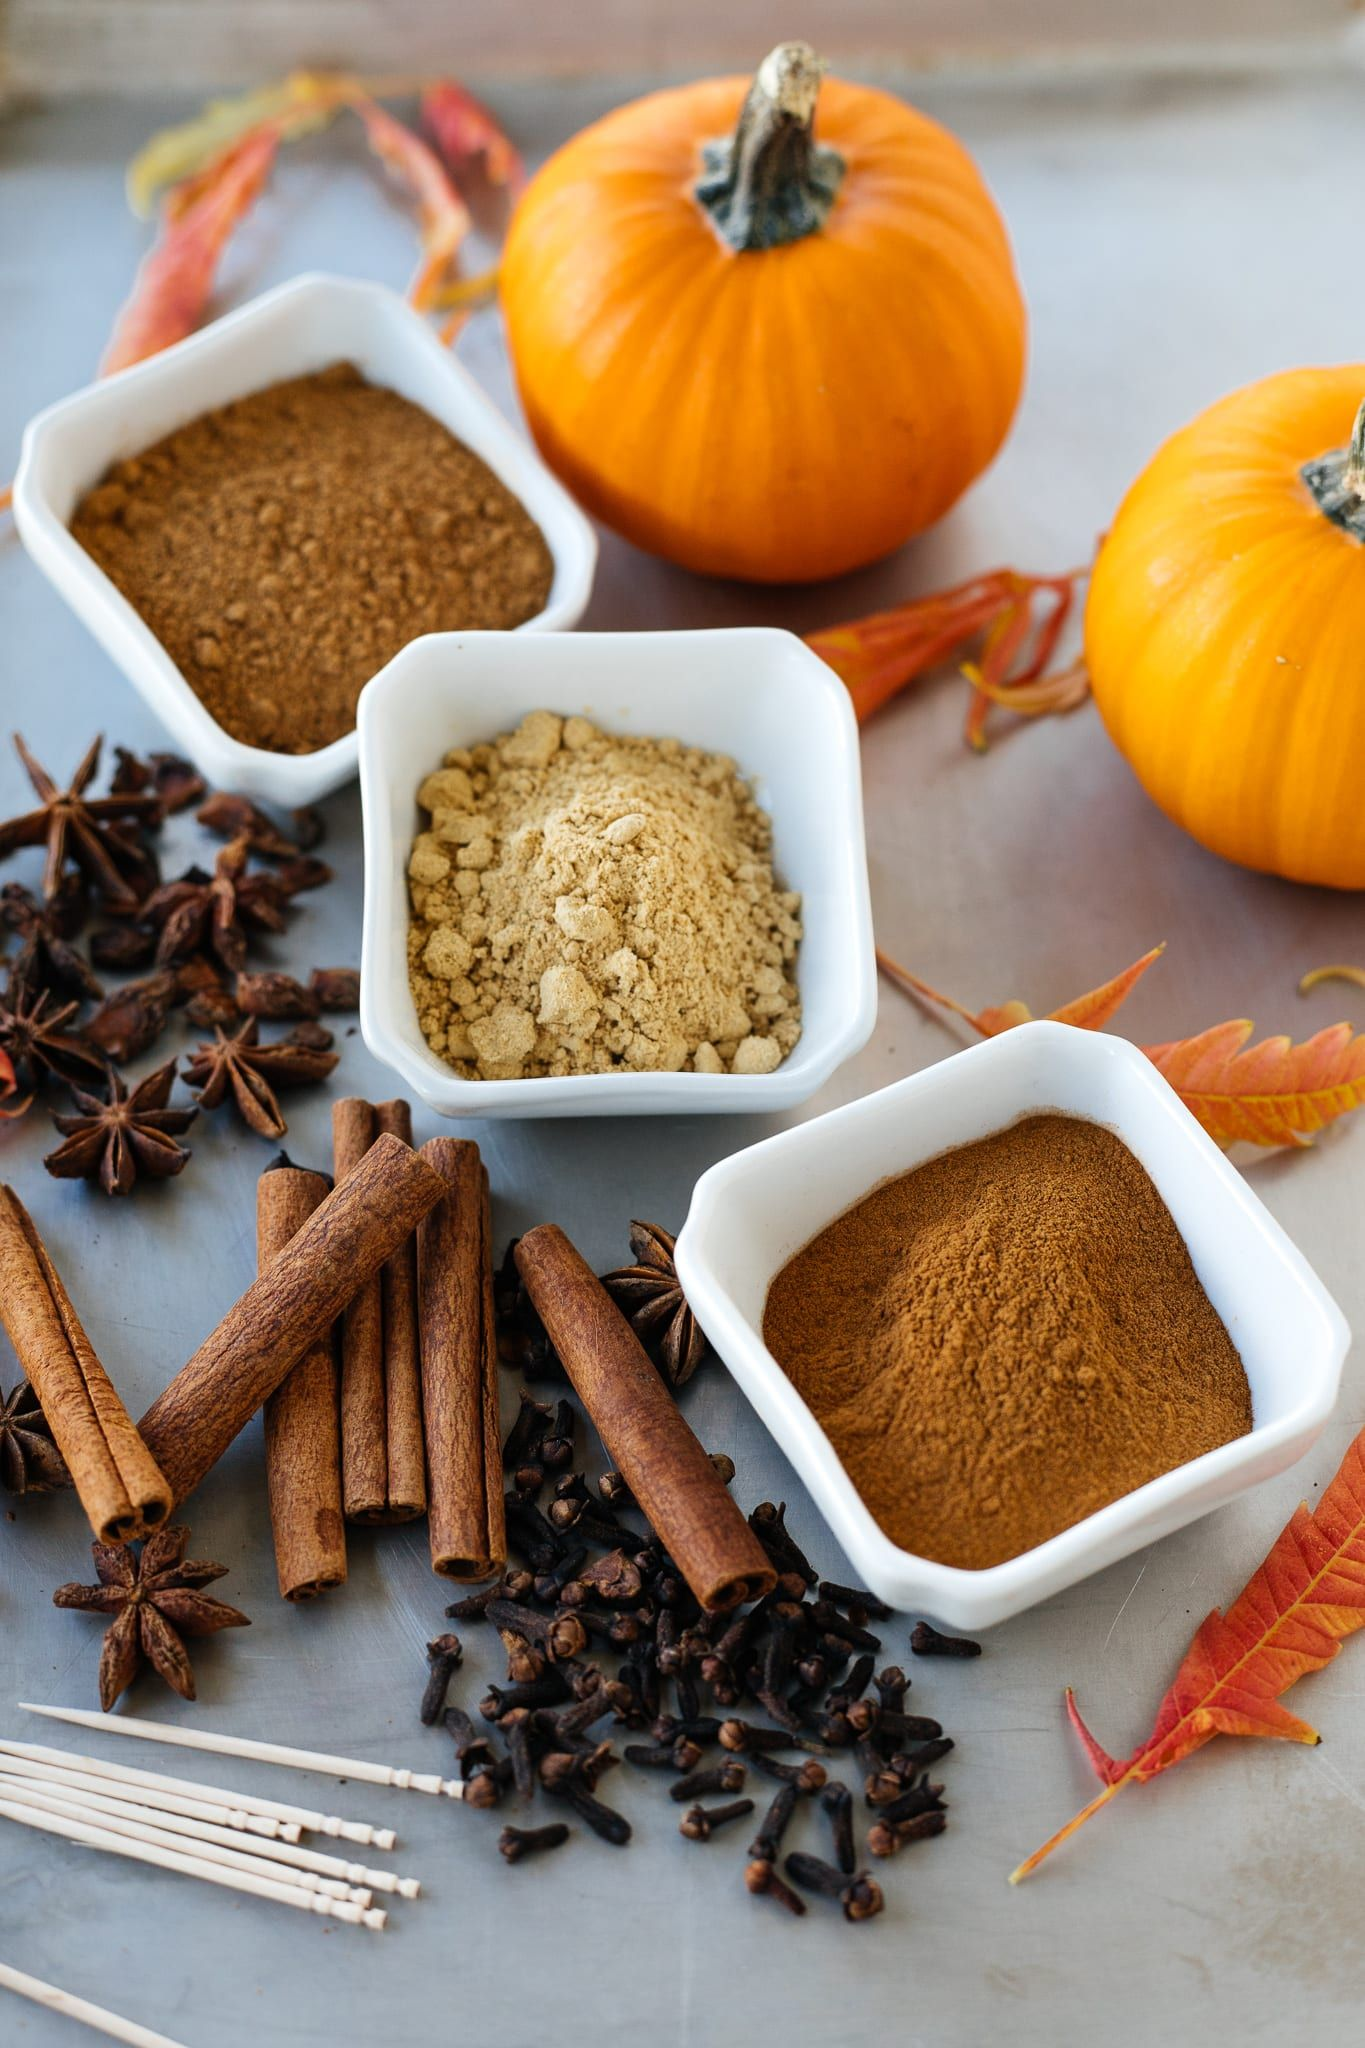 Pumpkin Pie Spice Mix Recipe Pie spice recipe, Food